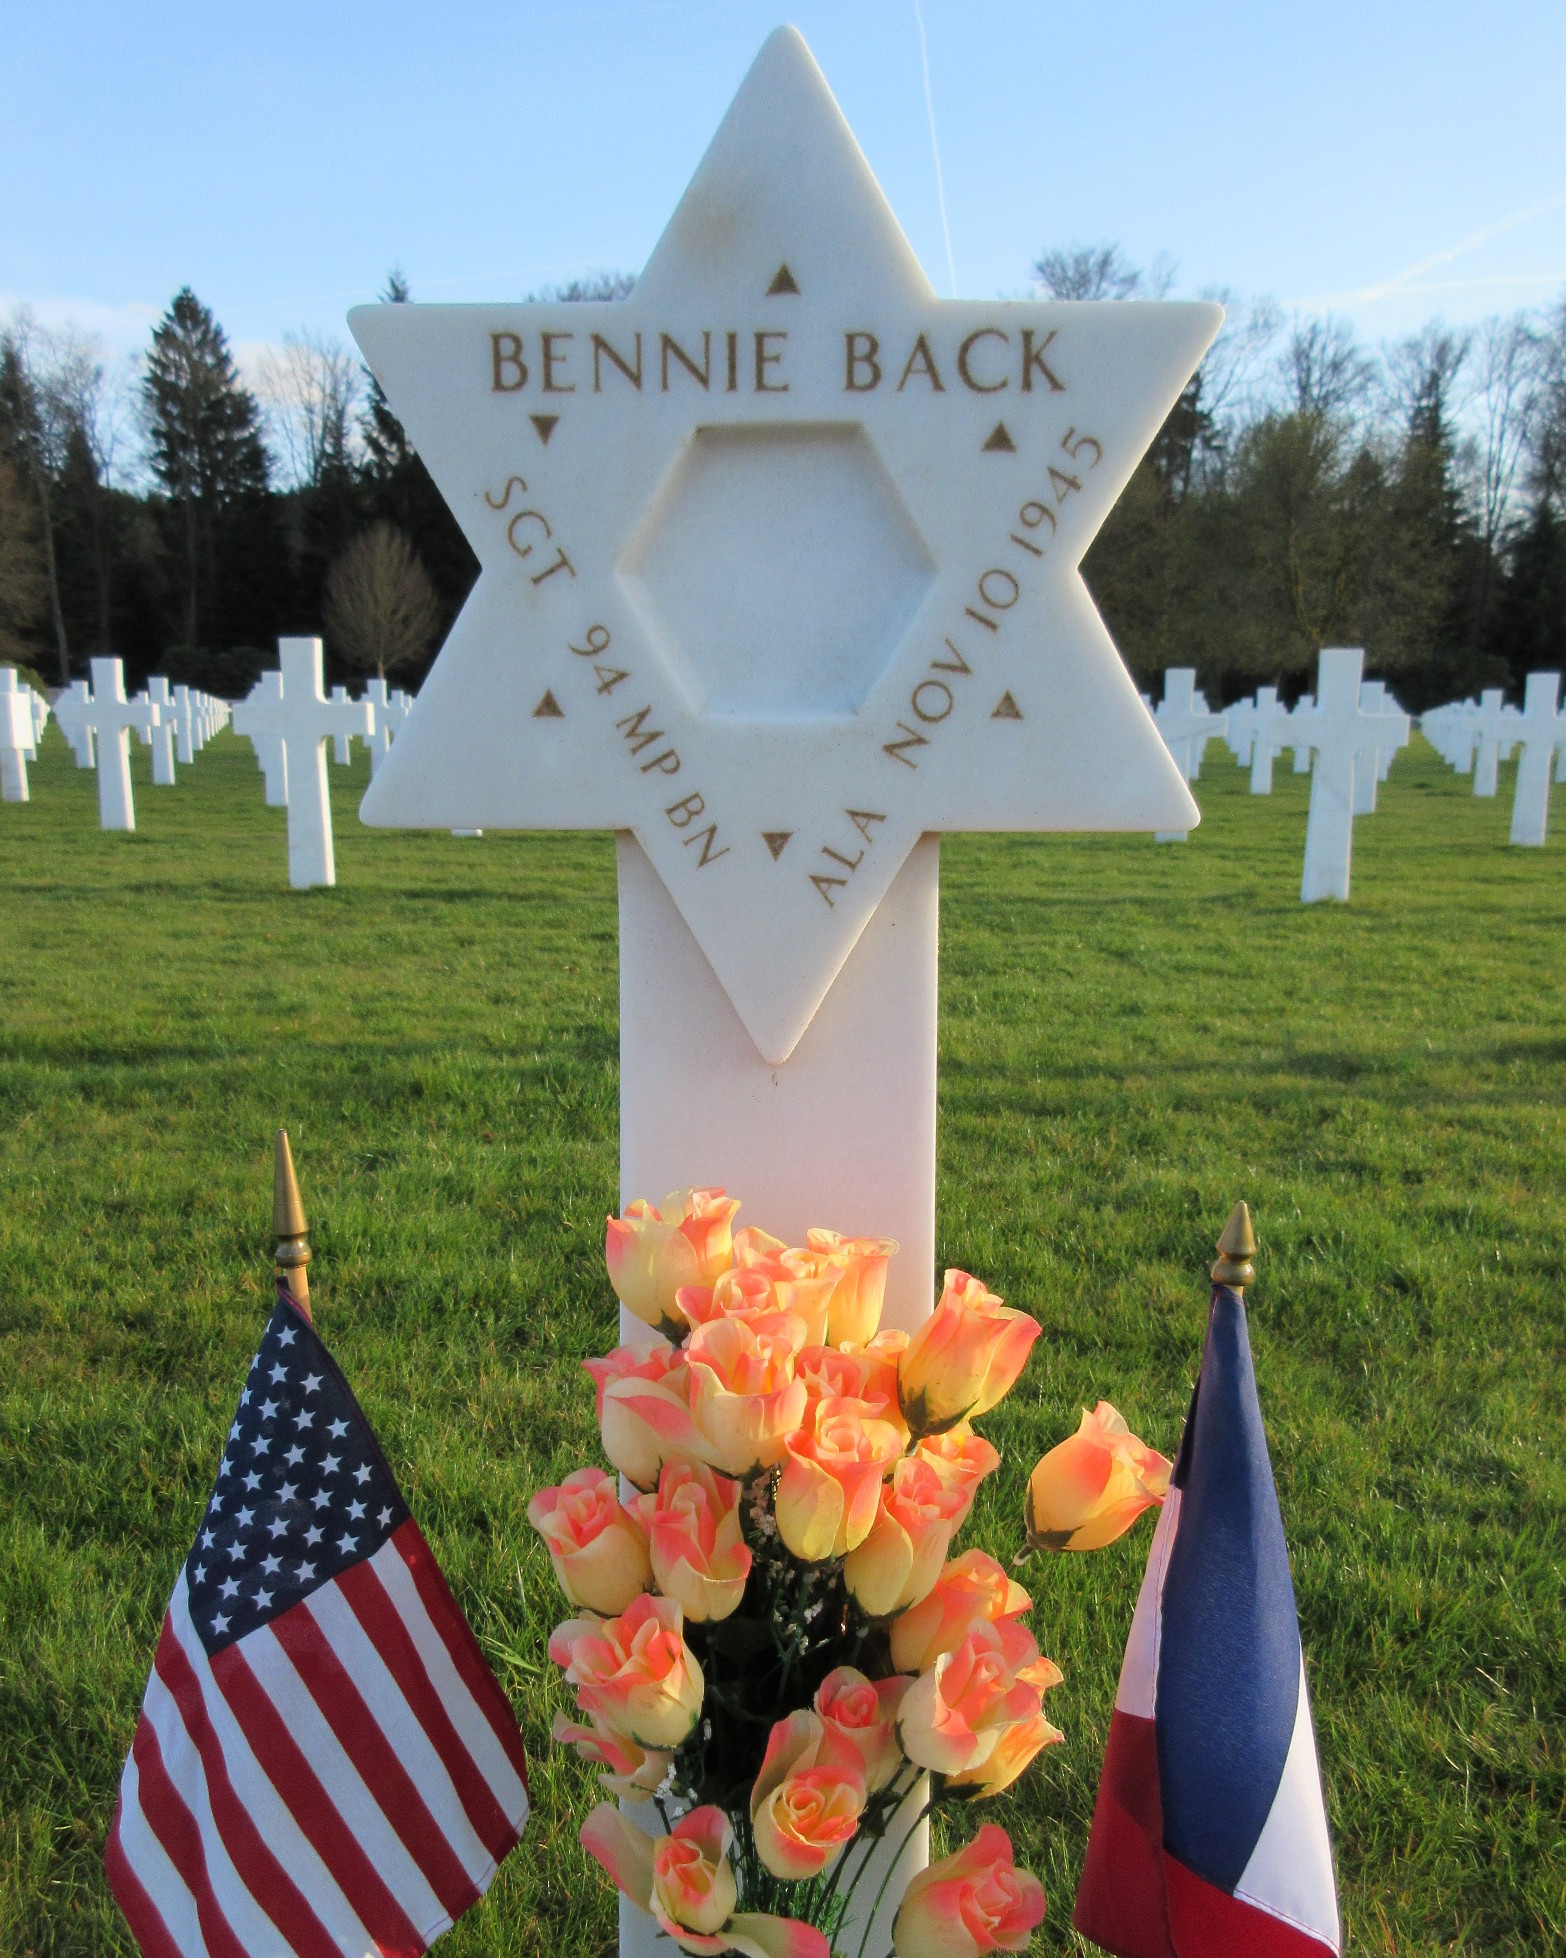 Sergeant Bennie Back   United States Army Military Police Corps, U.S. Government